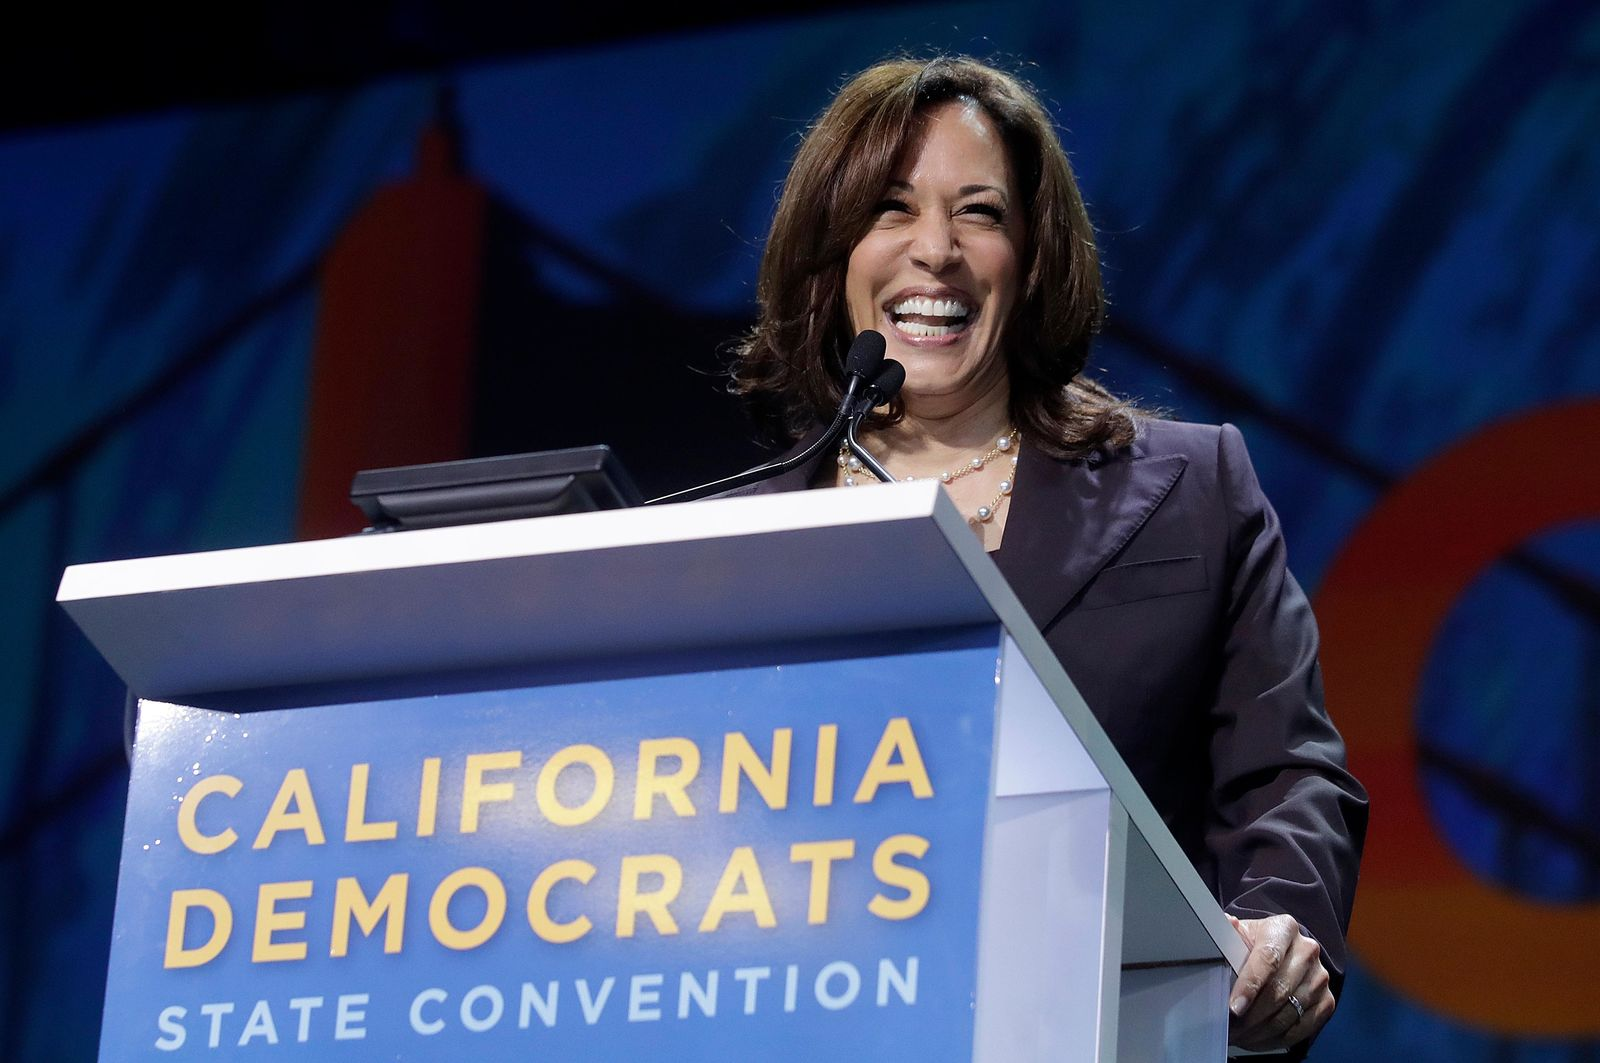 FILE - In this June 1, 2019, file photo, Democratic presidential candidate Sen. Kamala Harris, D-Calif., speaks during the 2019 California Democratic Party State Organizing Convention in San Francisco. (AP Photo/Jeff Chiu, File)